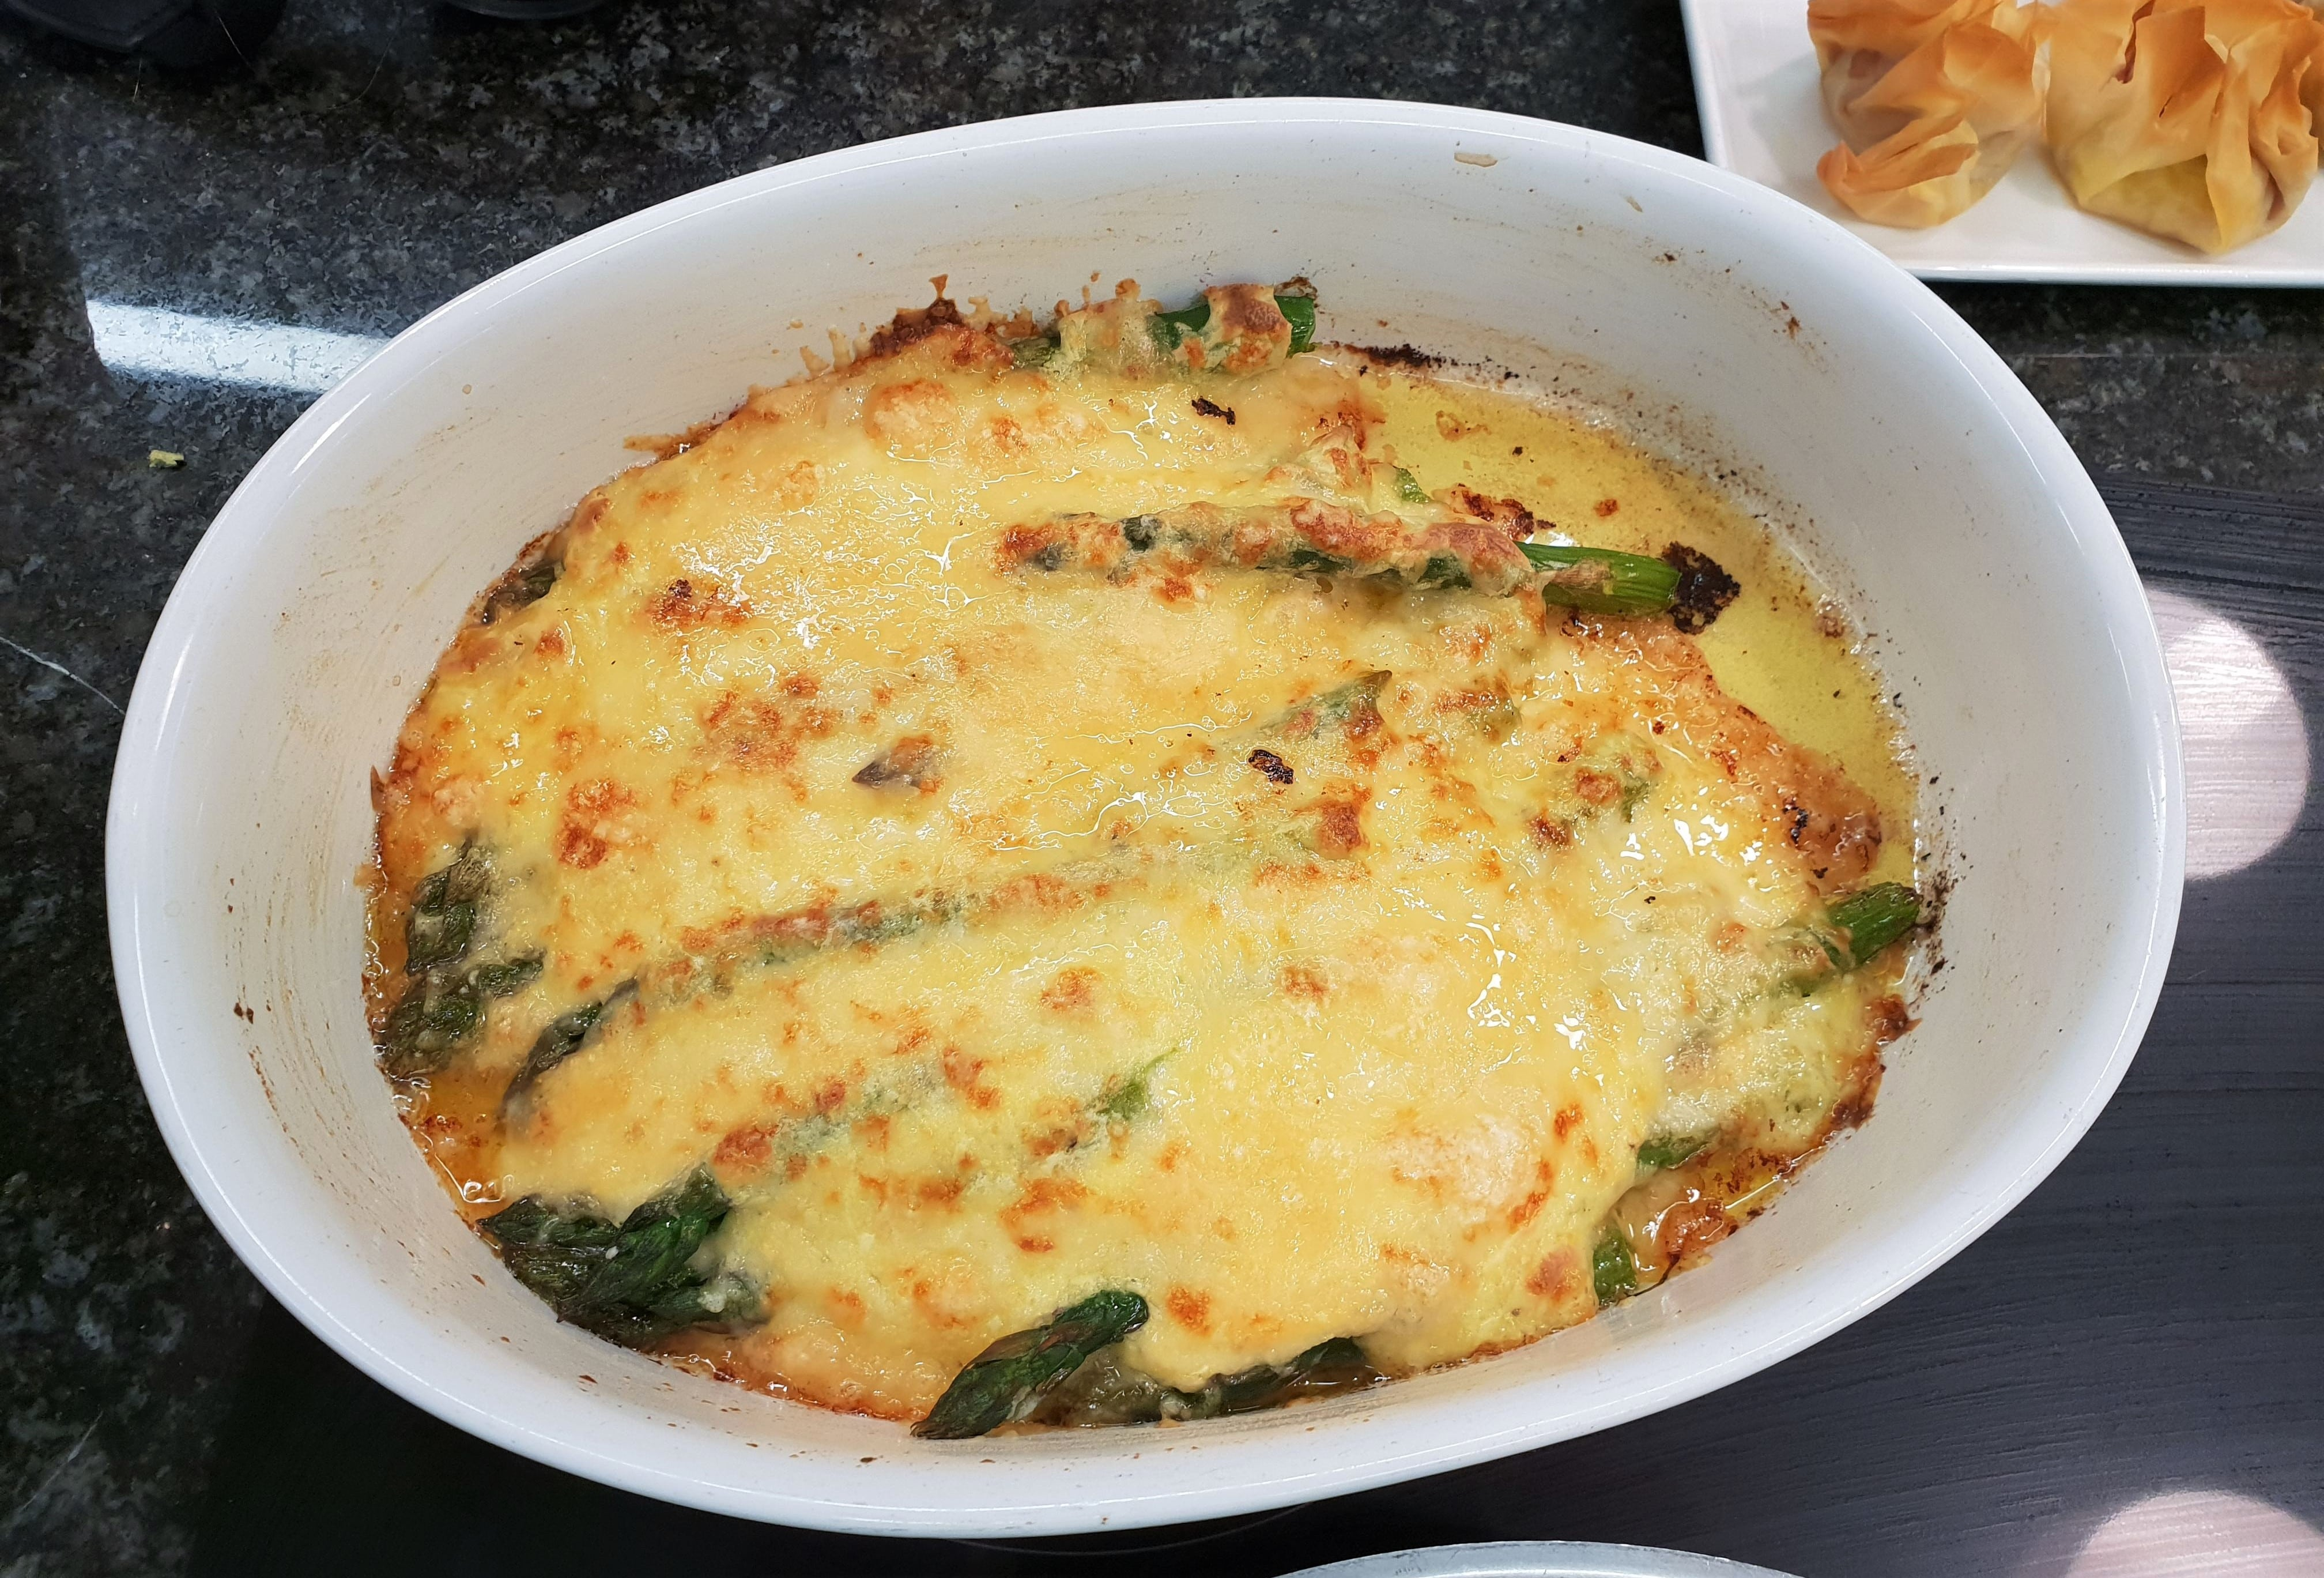 Comte cheese and asparagus bake